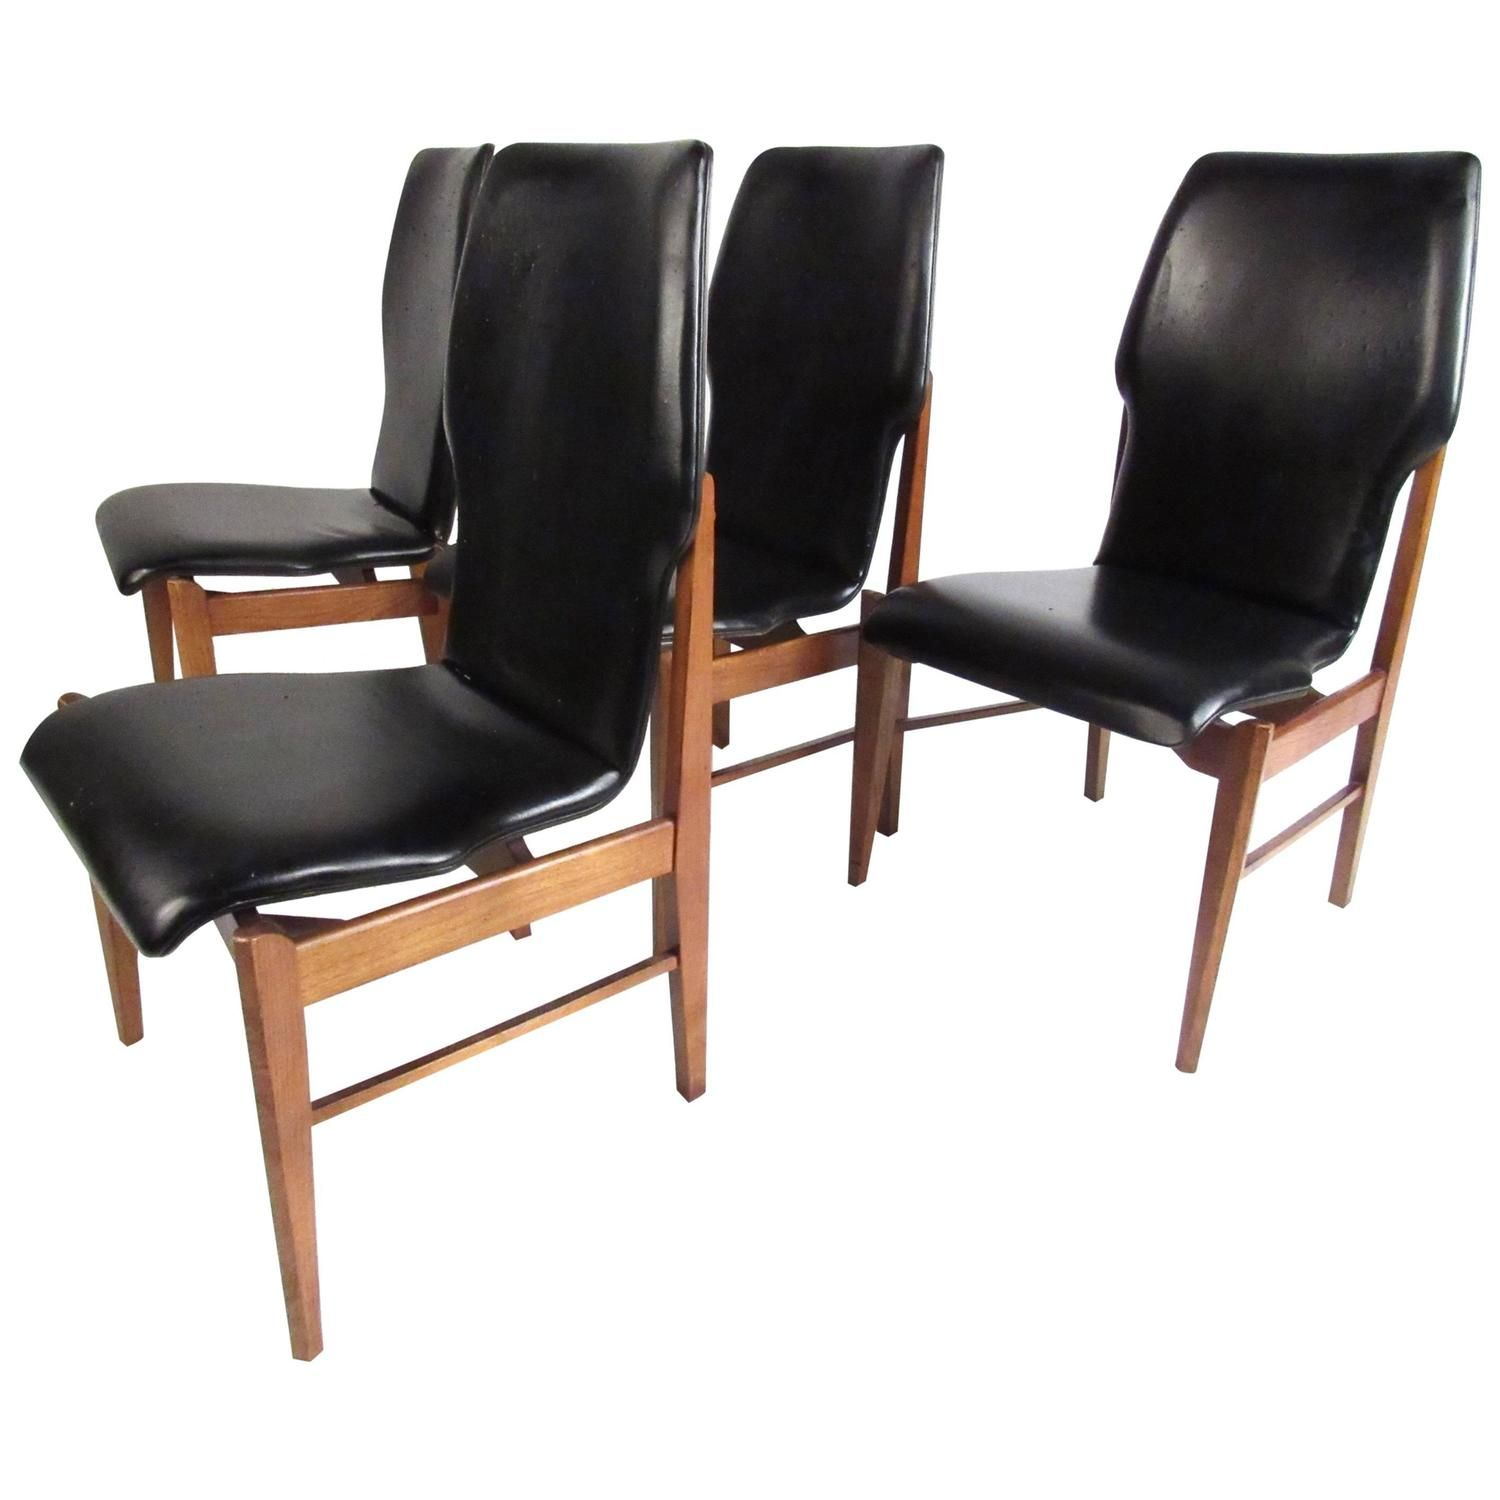 Mid Century Set Of High Back Dining Chairs Decadent Decor High